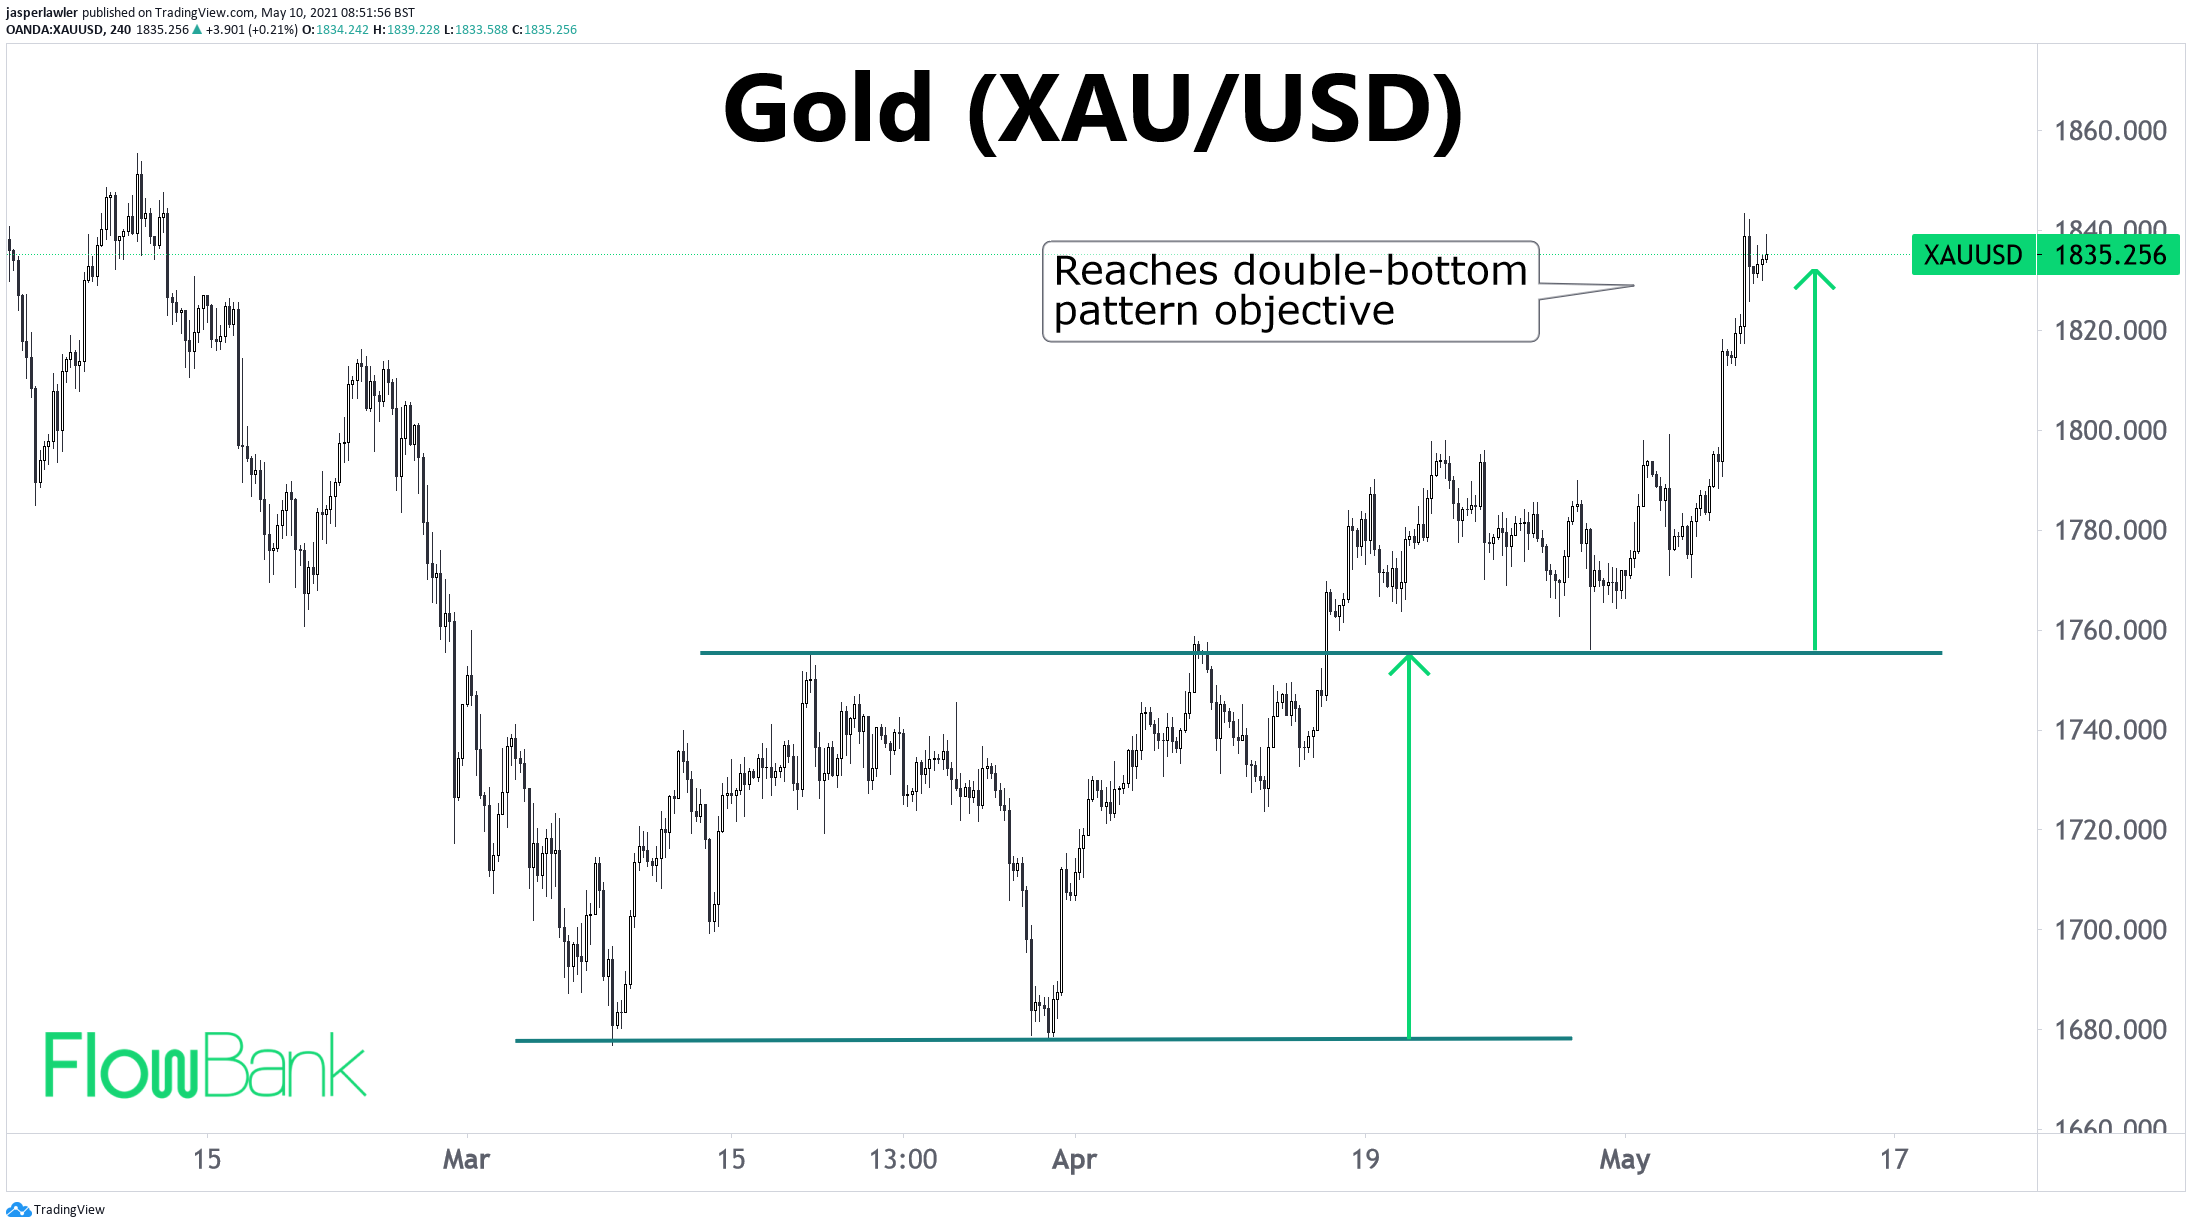 Gold reaches measured objective in TEXTBOOK double bottom